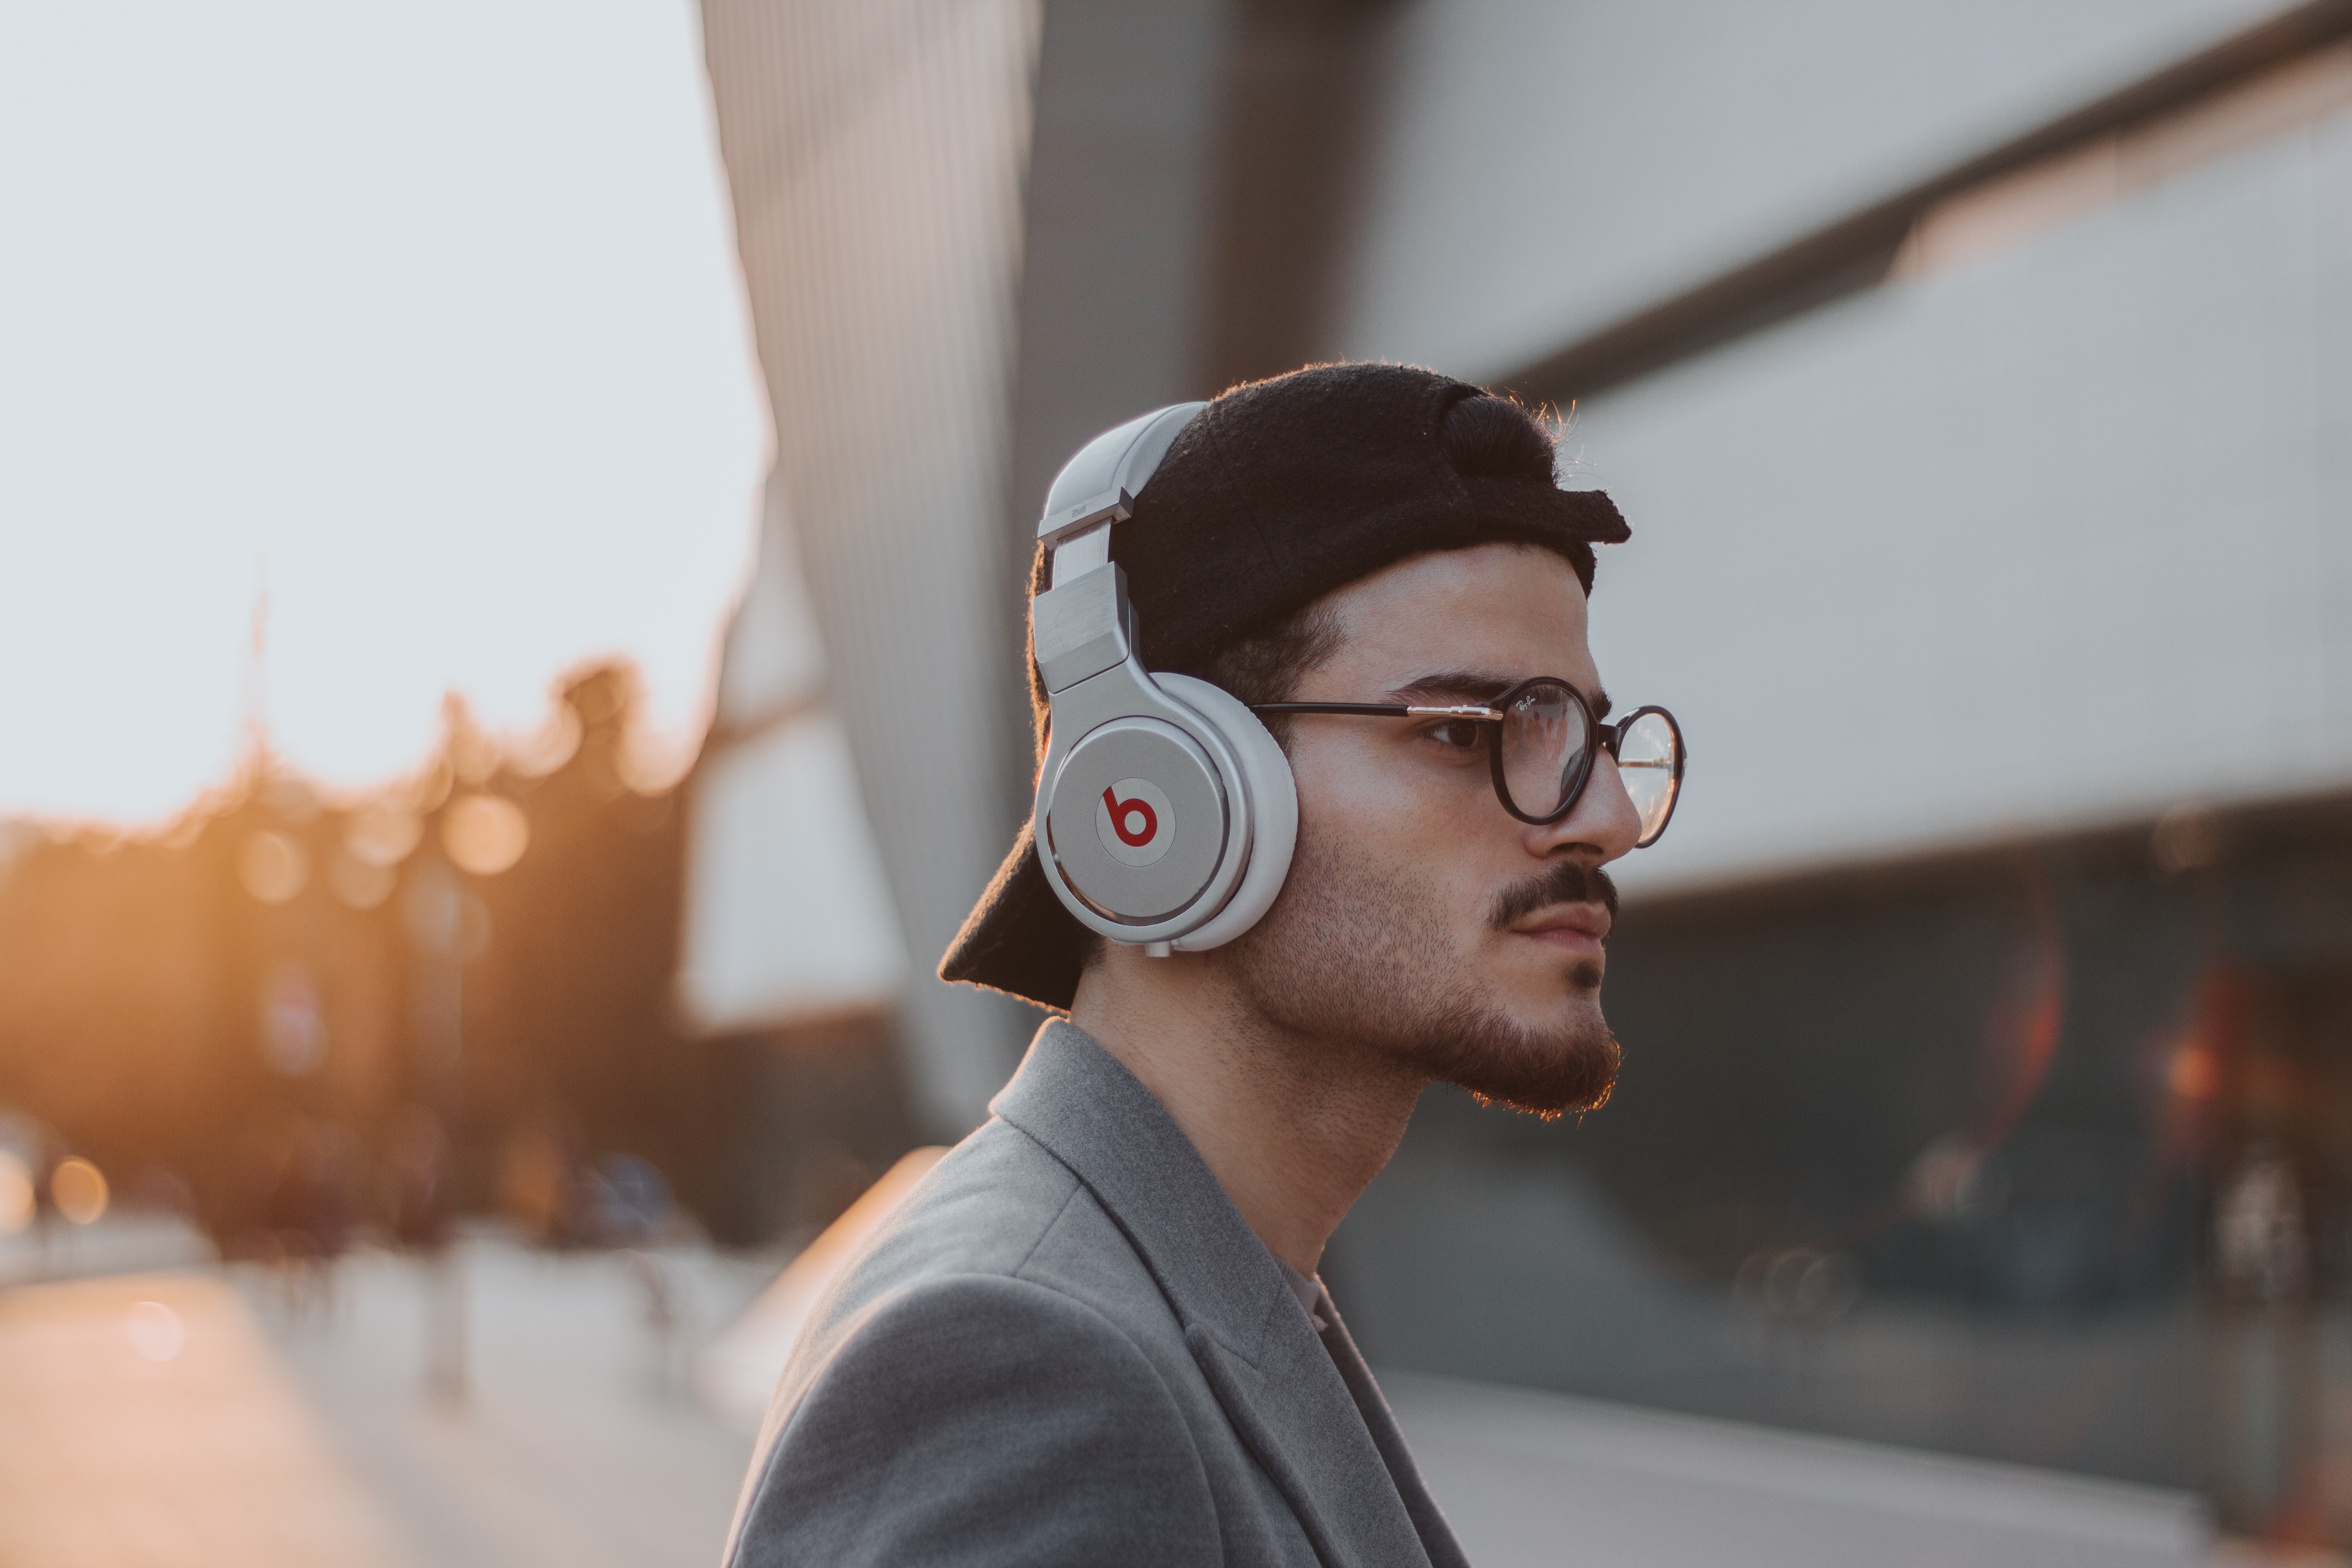 shallow focus photography of man wearing Beats wireless headphones